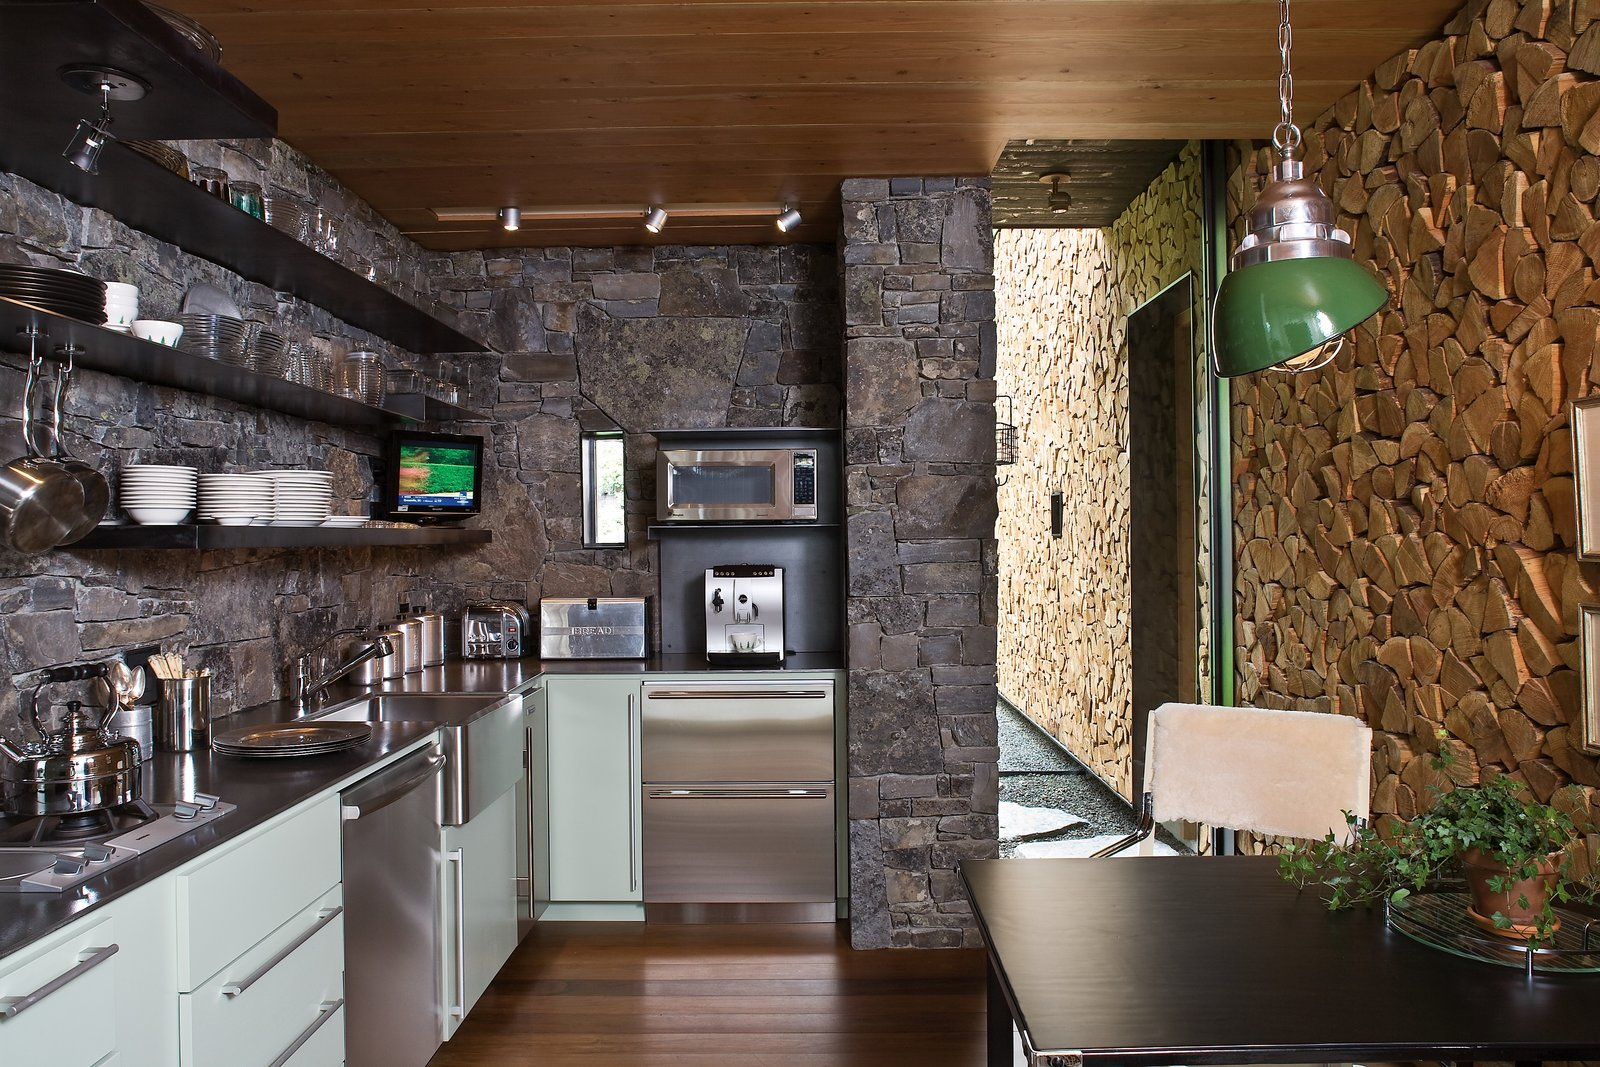 Kitchen, Track Lighting, Refrigerator, Stone Slab Backsplashe, Medium Hardwood Floor, Pendant Lighting, Open Cabinet, Microwave, Metal Counter, Colorful Cabinet, Undermount Sink, and Dishwasher Natural materials such as concrete, stone, and wood give the architecture a rugged honesty that allows it to harmonize with the pine trees and stone outcroppings outdoors.  Photo 9 of 14 in Stacked-Wood Walls Tie This Eco-Friendly Camp to the Montana Landscape